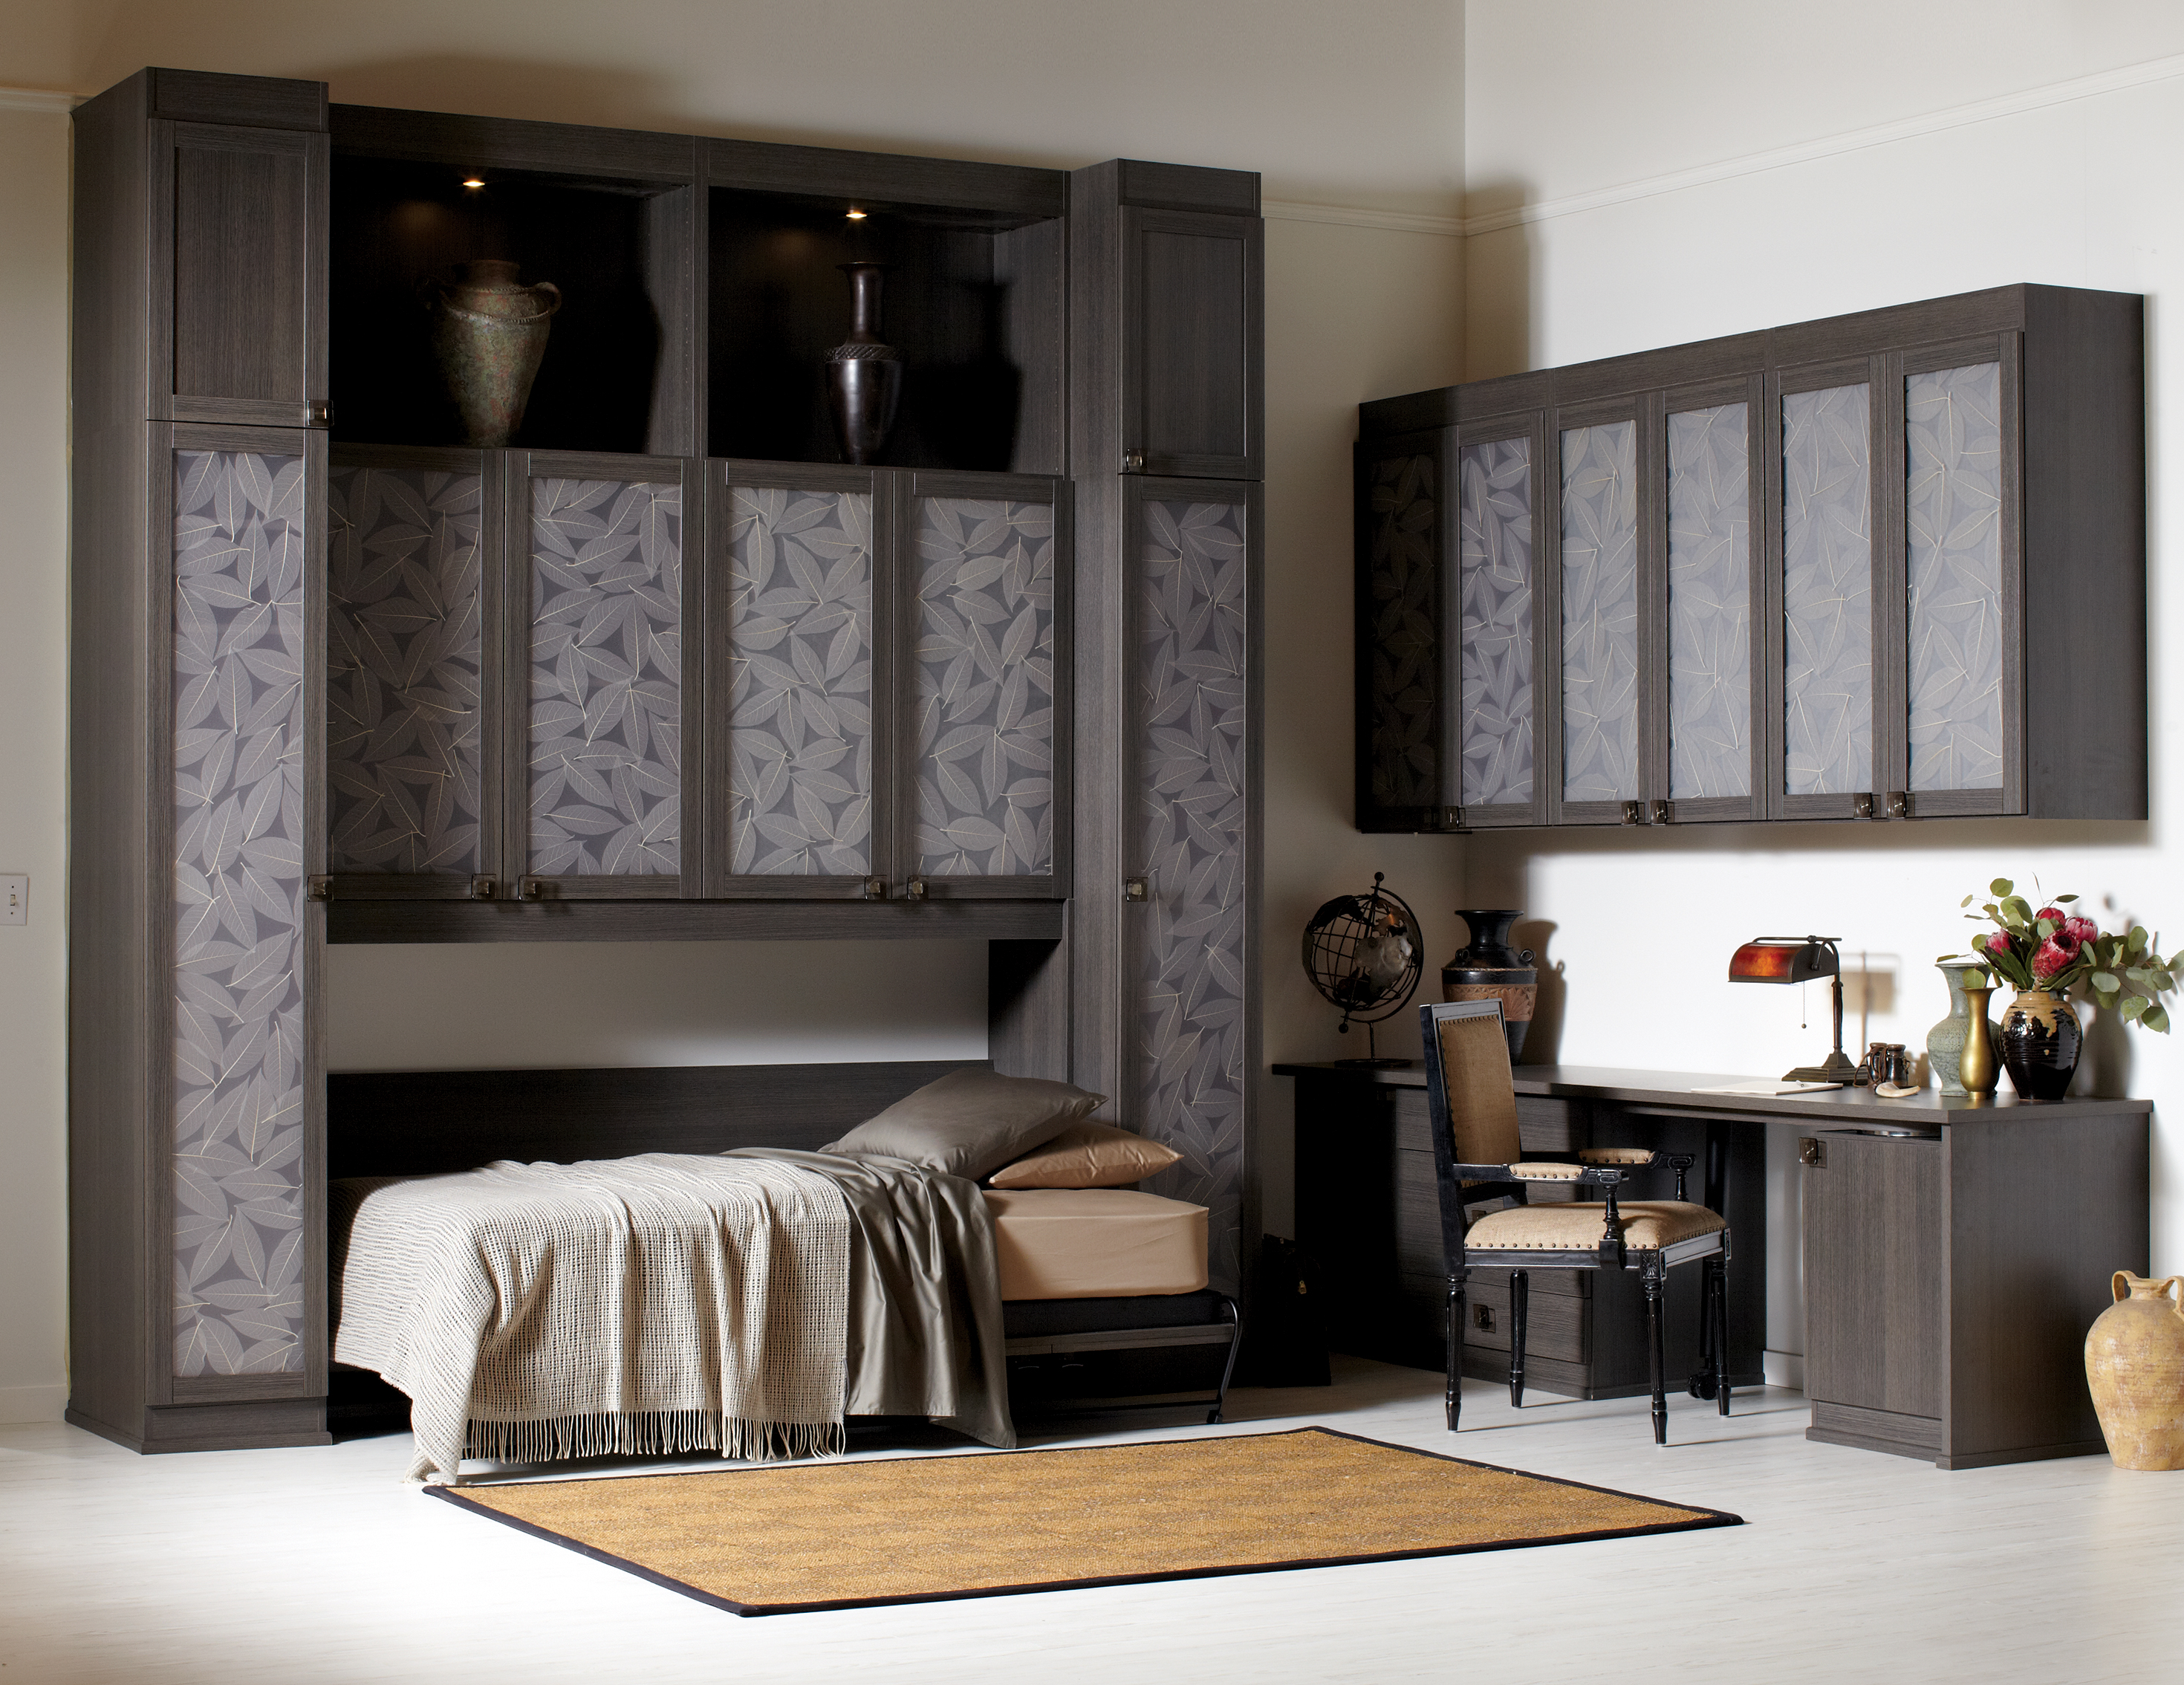 California Closets Monterey   Space Saving Solutions With Custom Cabinets